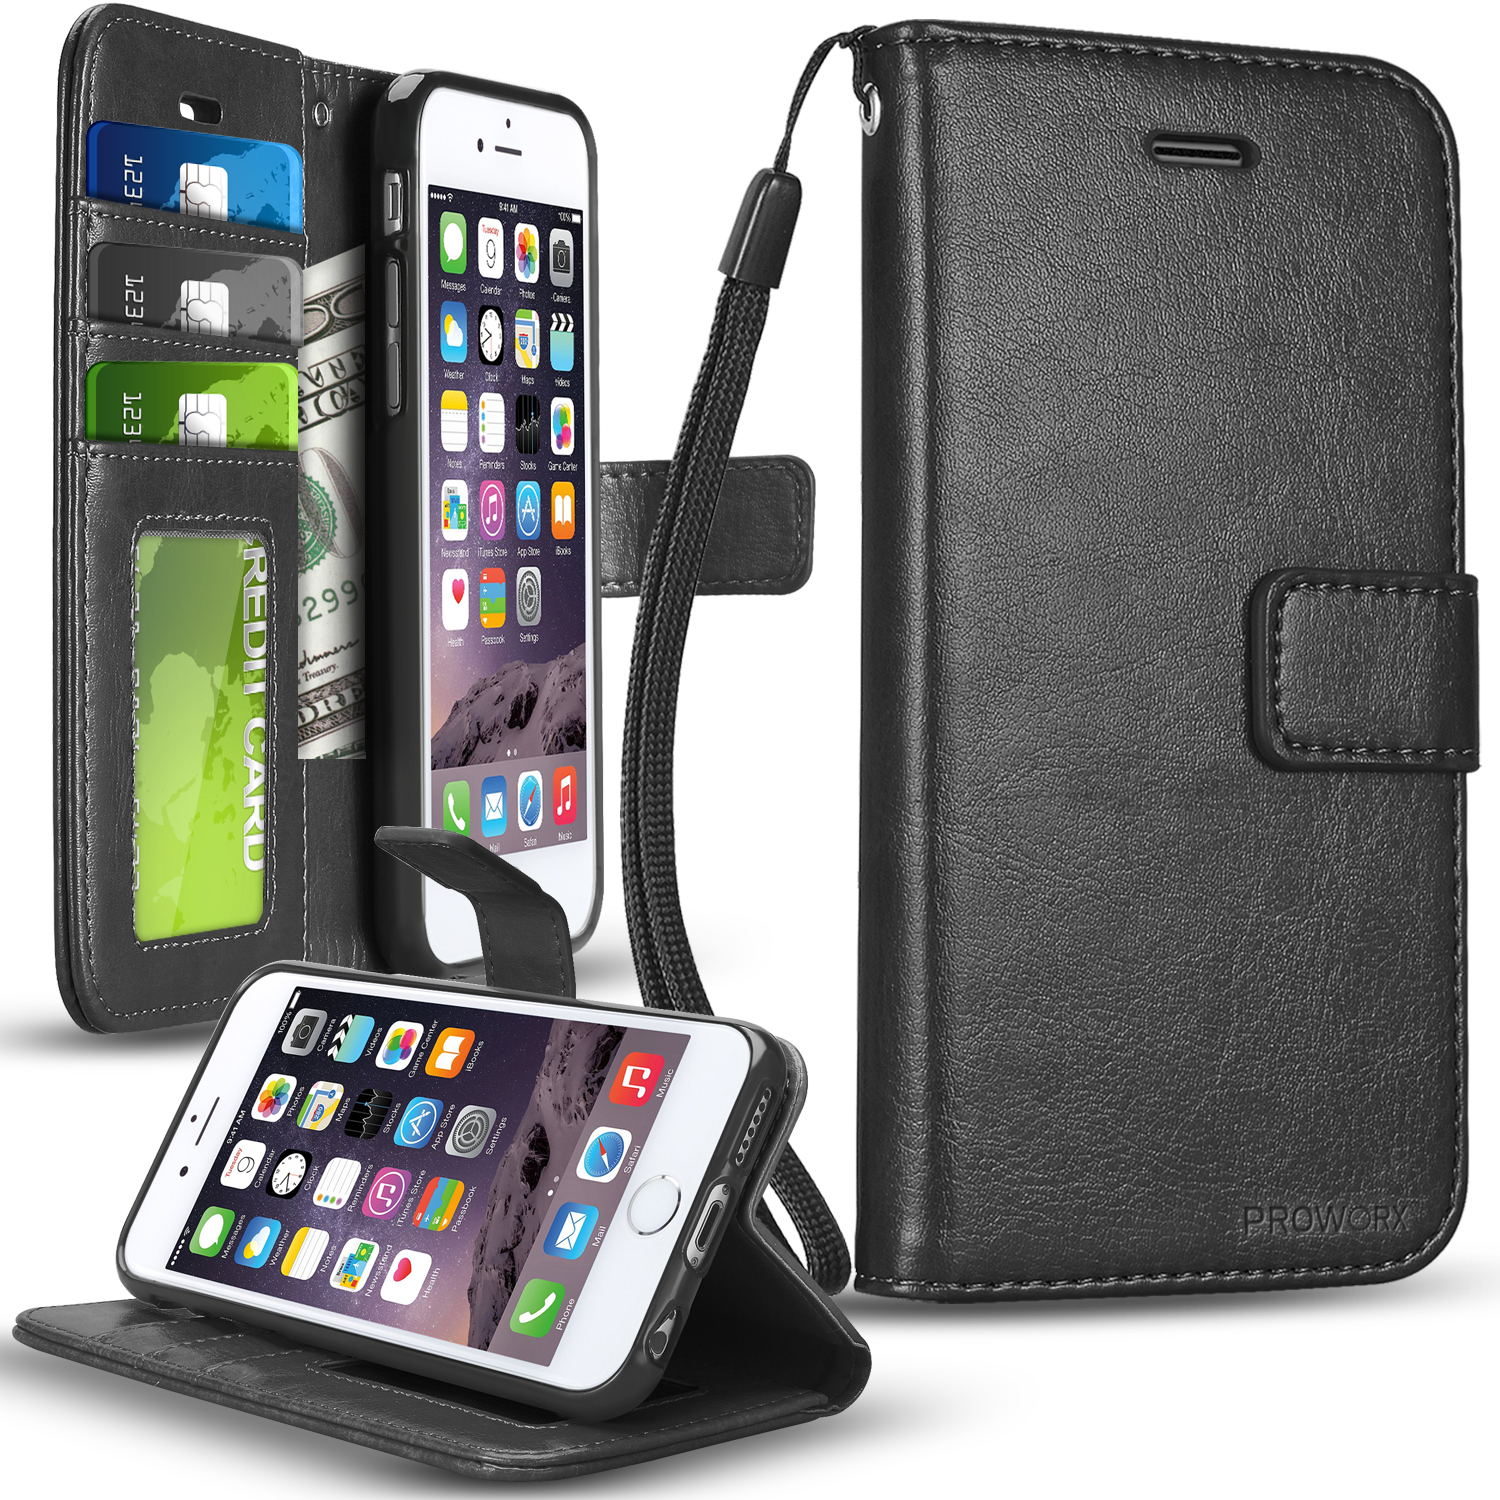 Apple iPhone 6 6S (4.7) Black ProWorx Wallet Case Luxury PU Leather Case Cover With Card Slots & Stand